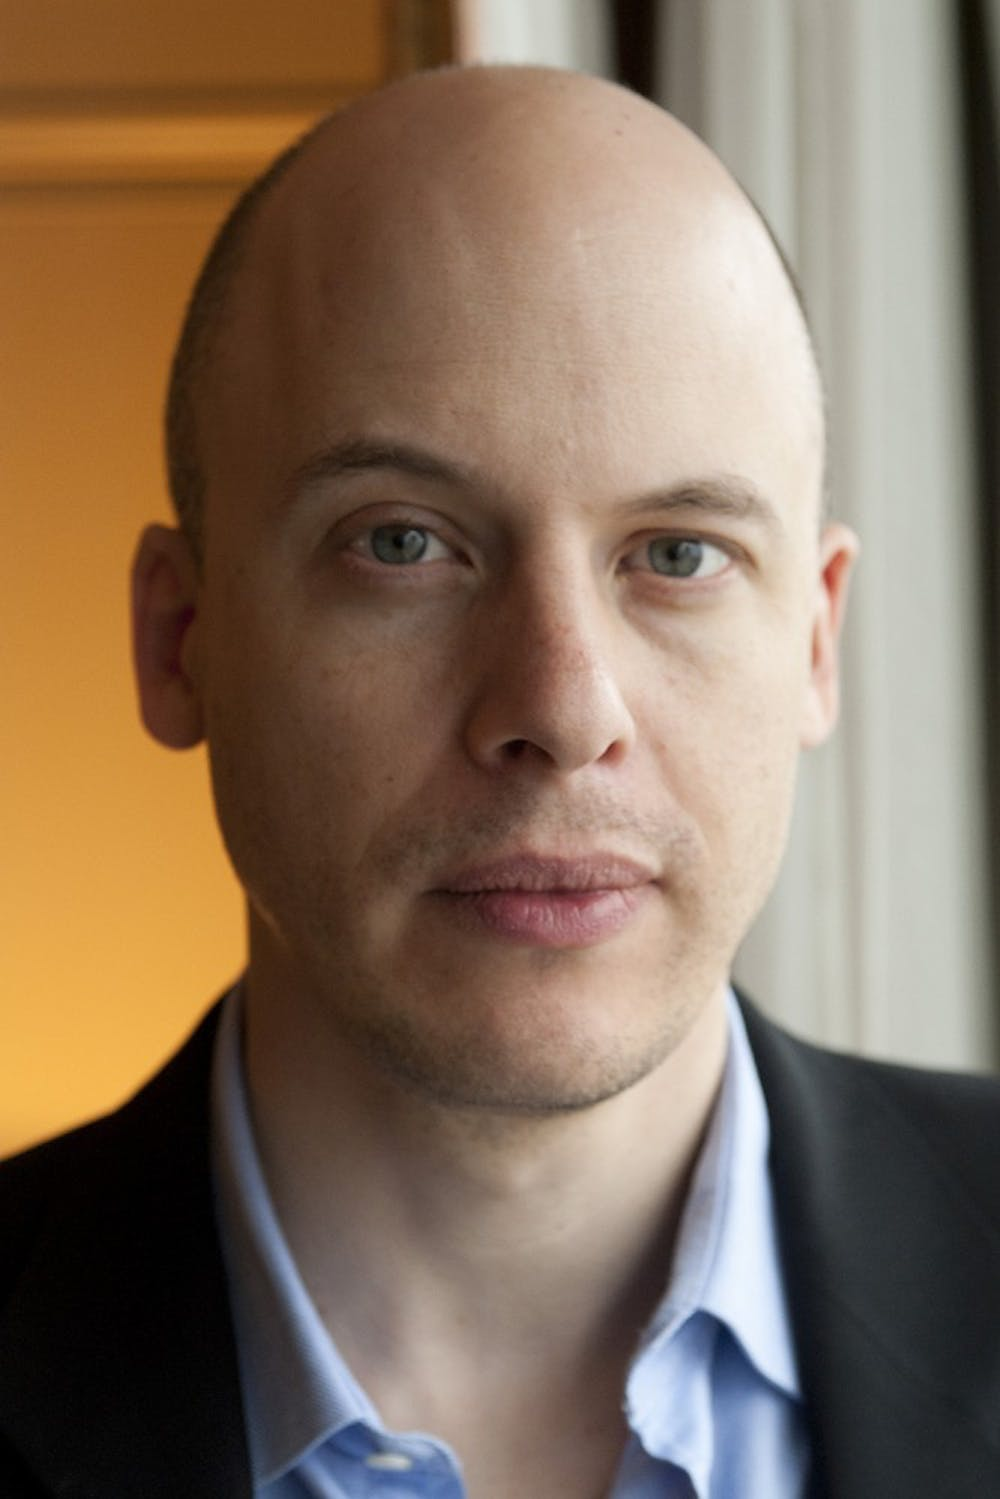 Q&A with journalist, author Lev Grossman